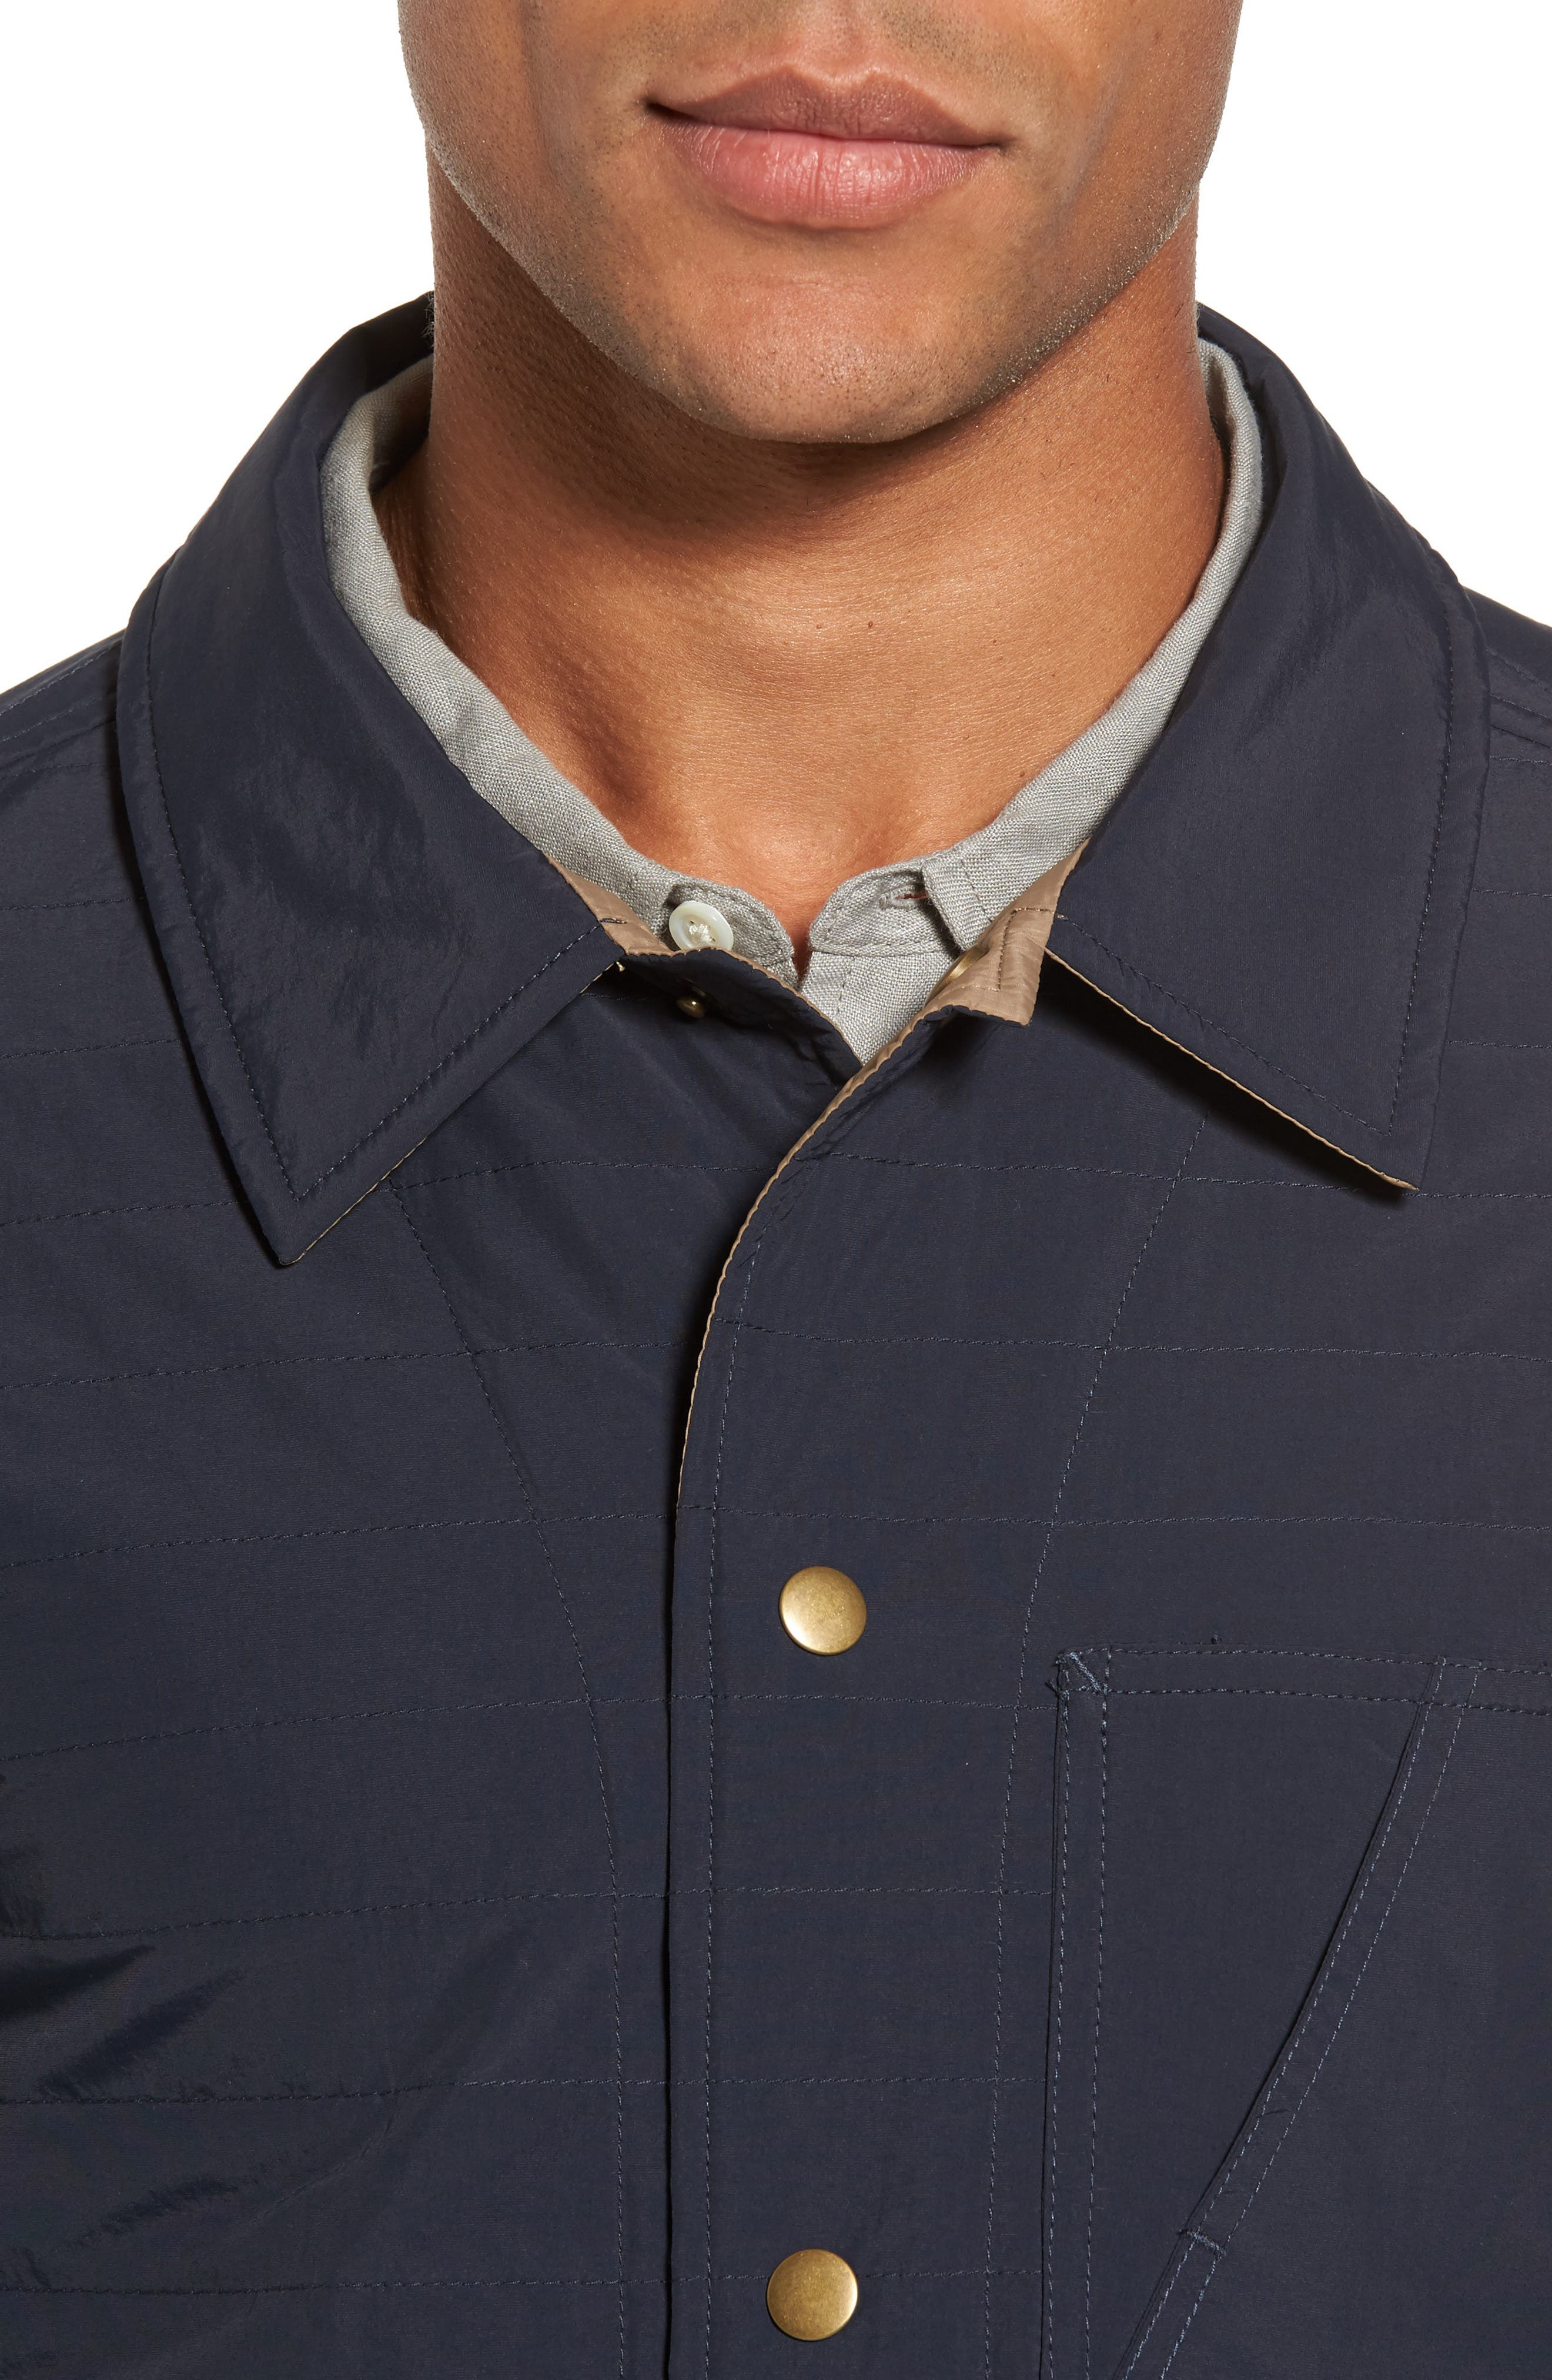 Leroy Quilted Shirt Jacket,                             Alternate thumbnail 4, color,                             410